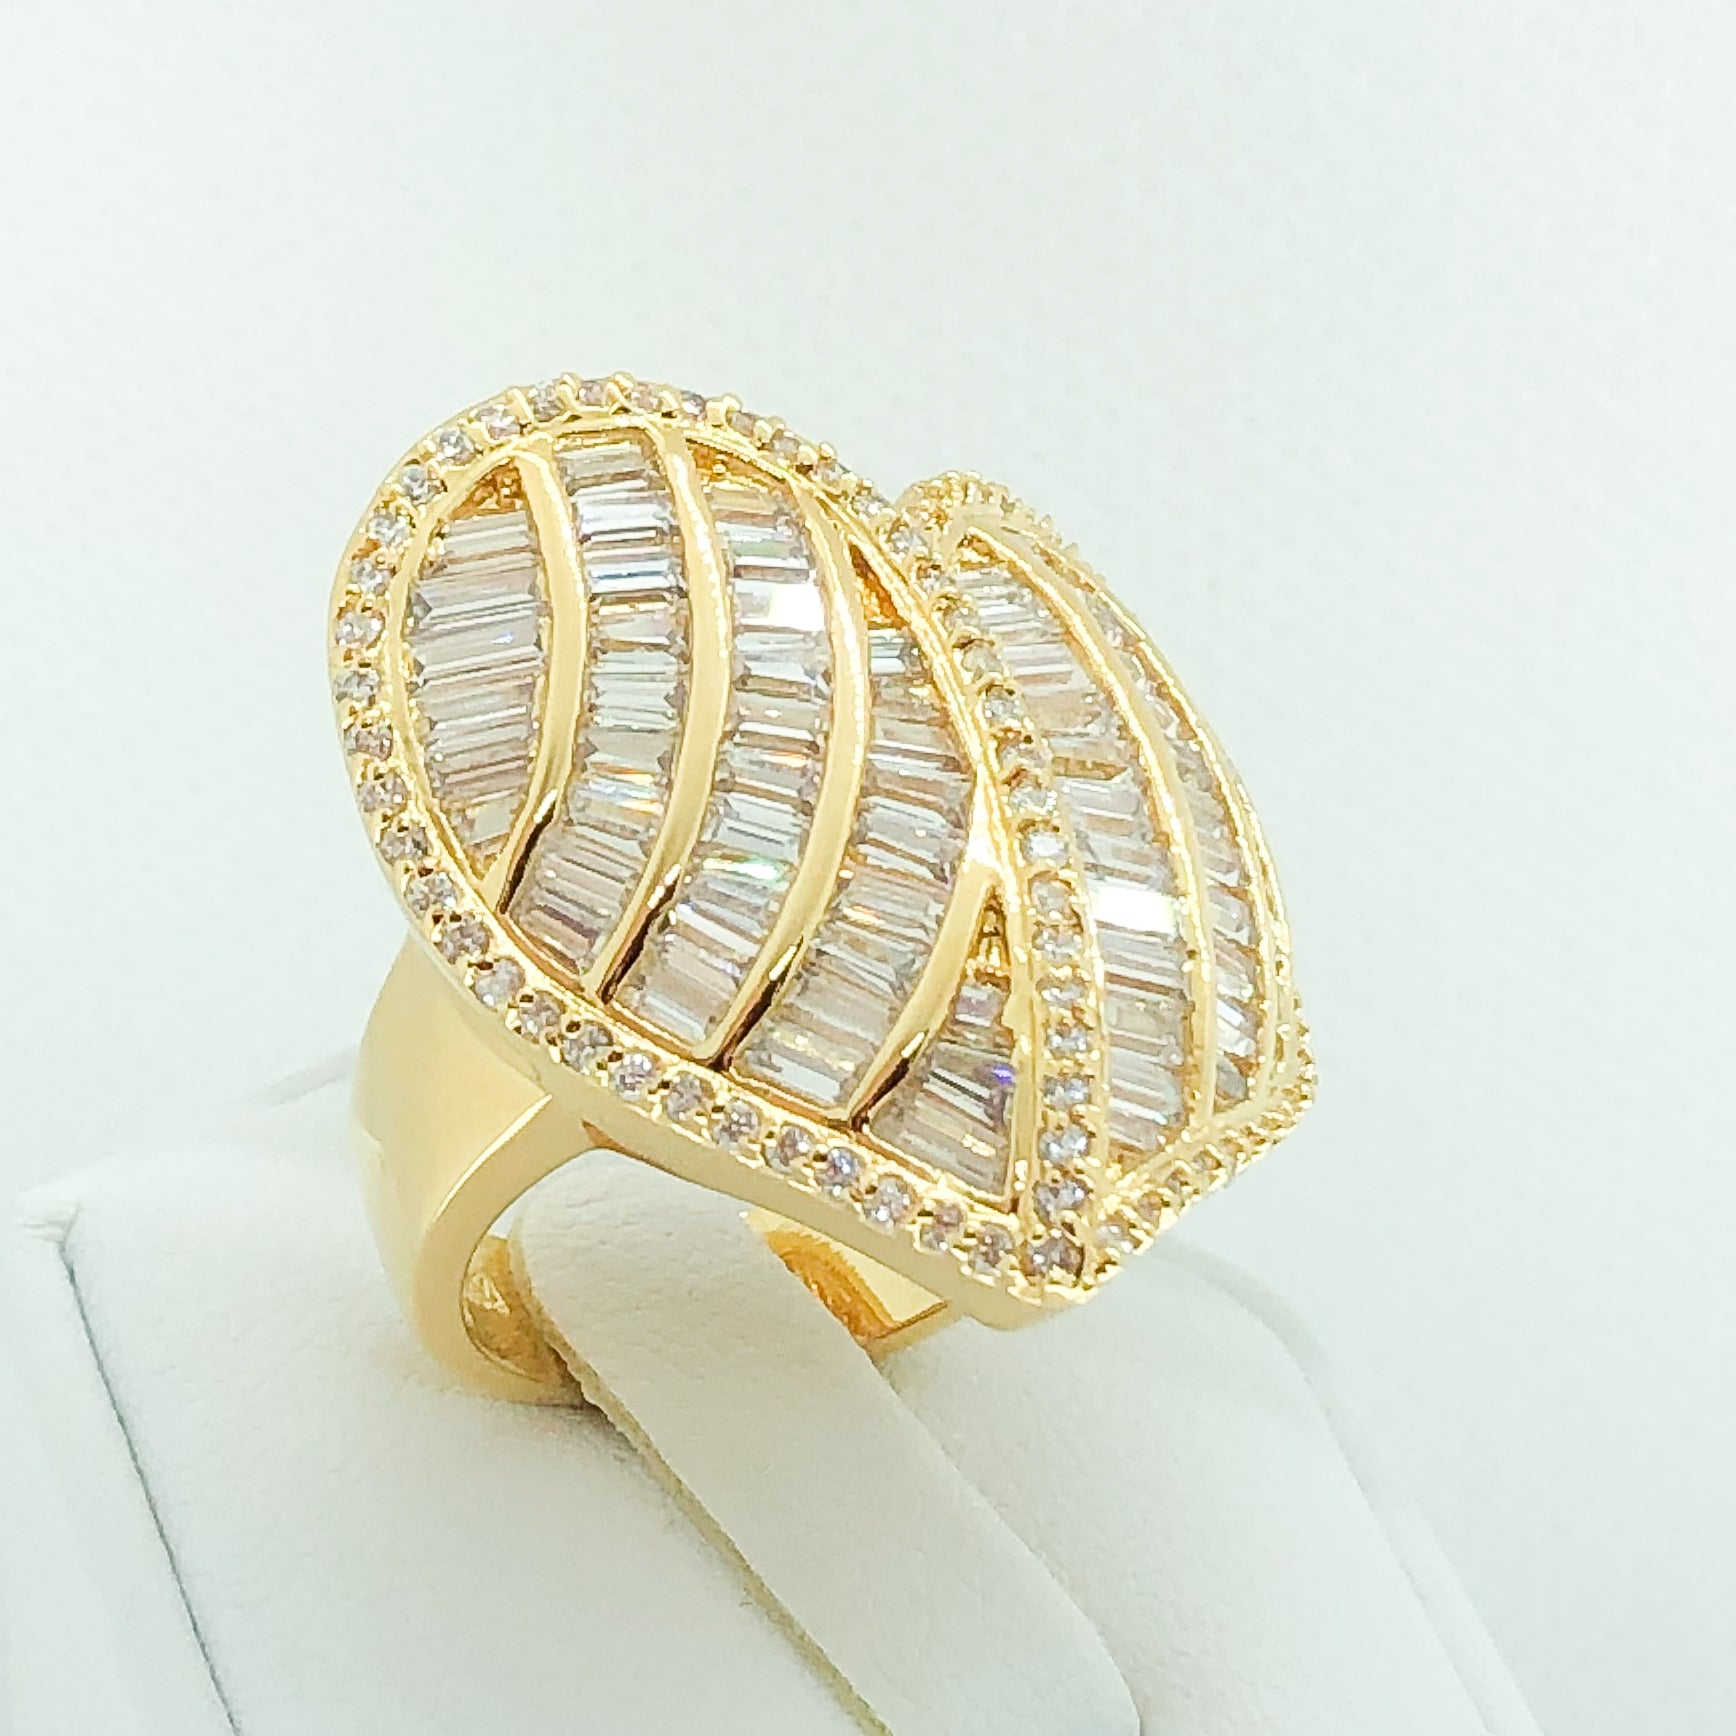 ID:R5055 Women 18K Yellow Gold GF Fashion Jewelry Stunning Unique Heart Design Luxury Eternity Cocktail Ring